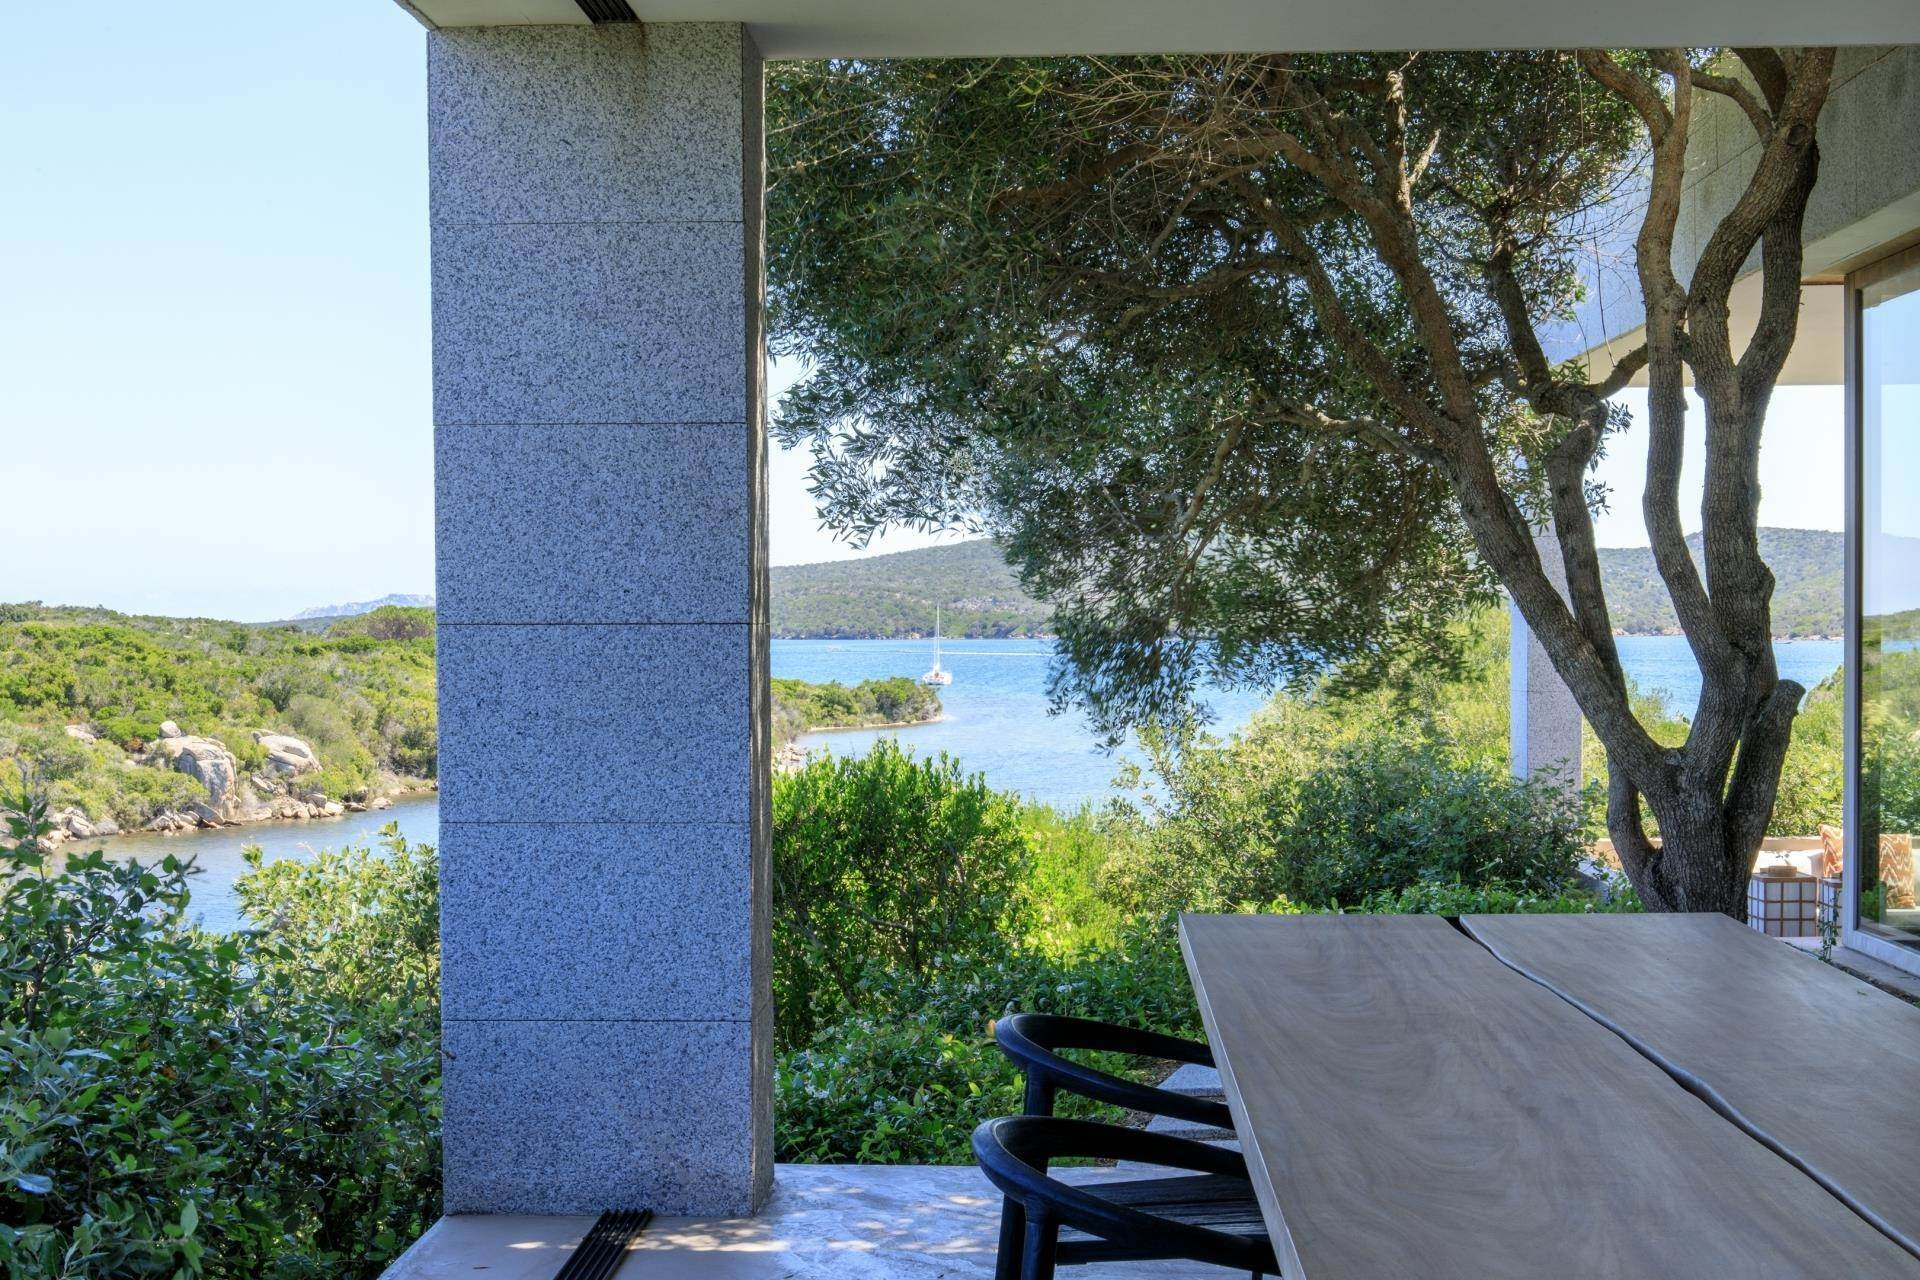 13. Villa/Townhouse for Sale at Waterfront Villa La Coluccia Costa Smeralda, Olbia Tempio,07020 Italy